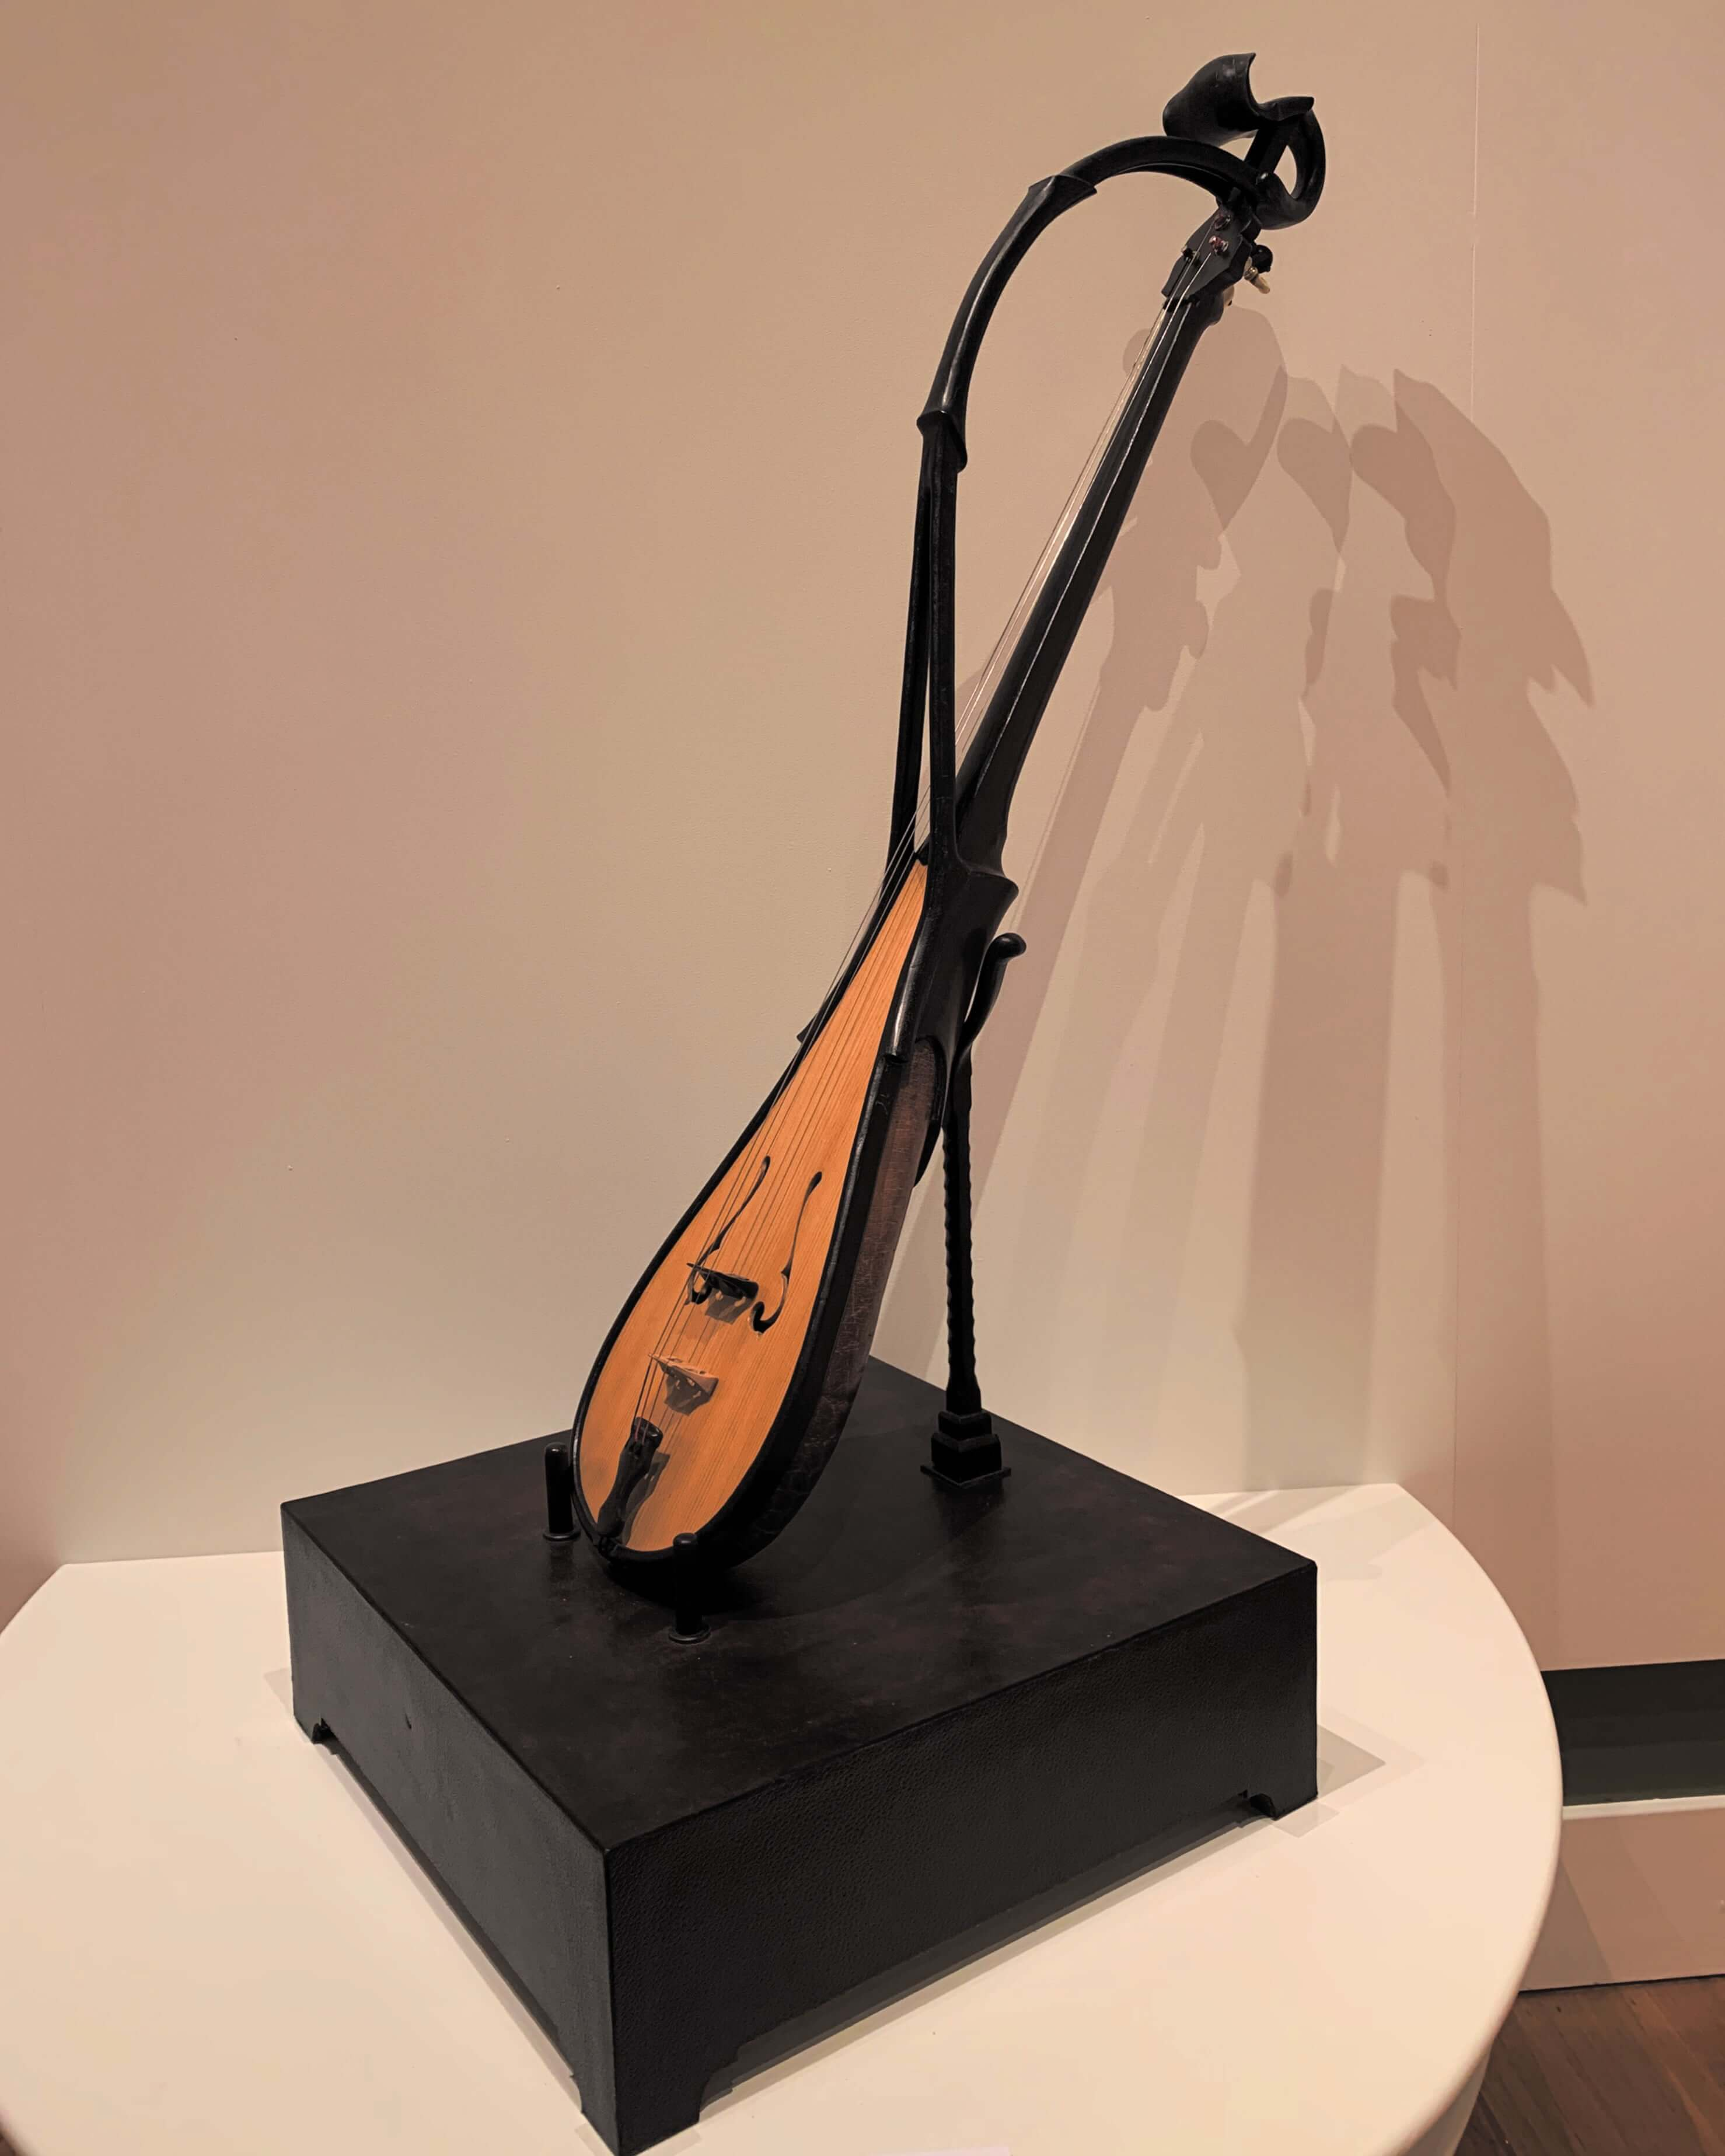 A string musical instument made of leather on display at the Queen Victoria Museum and Gallery in Launceston, Tasmania - the instument's shadows are visible on the wall behind it